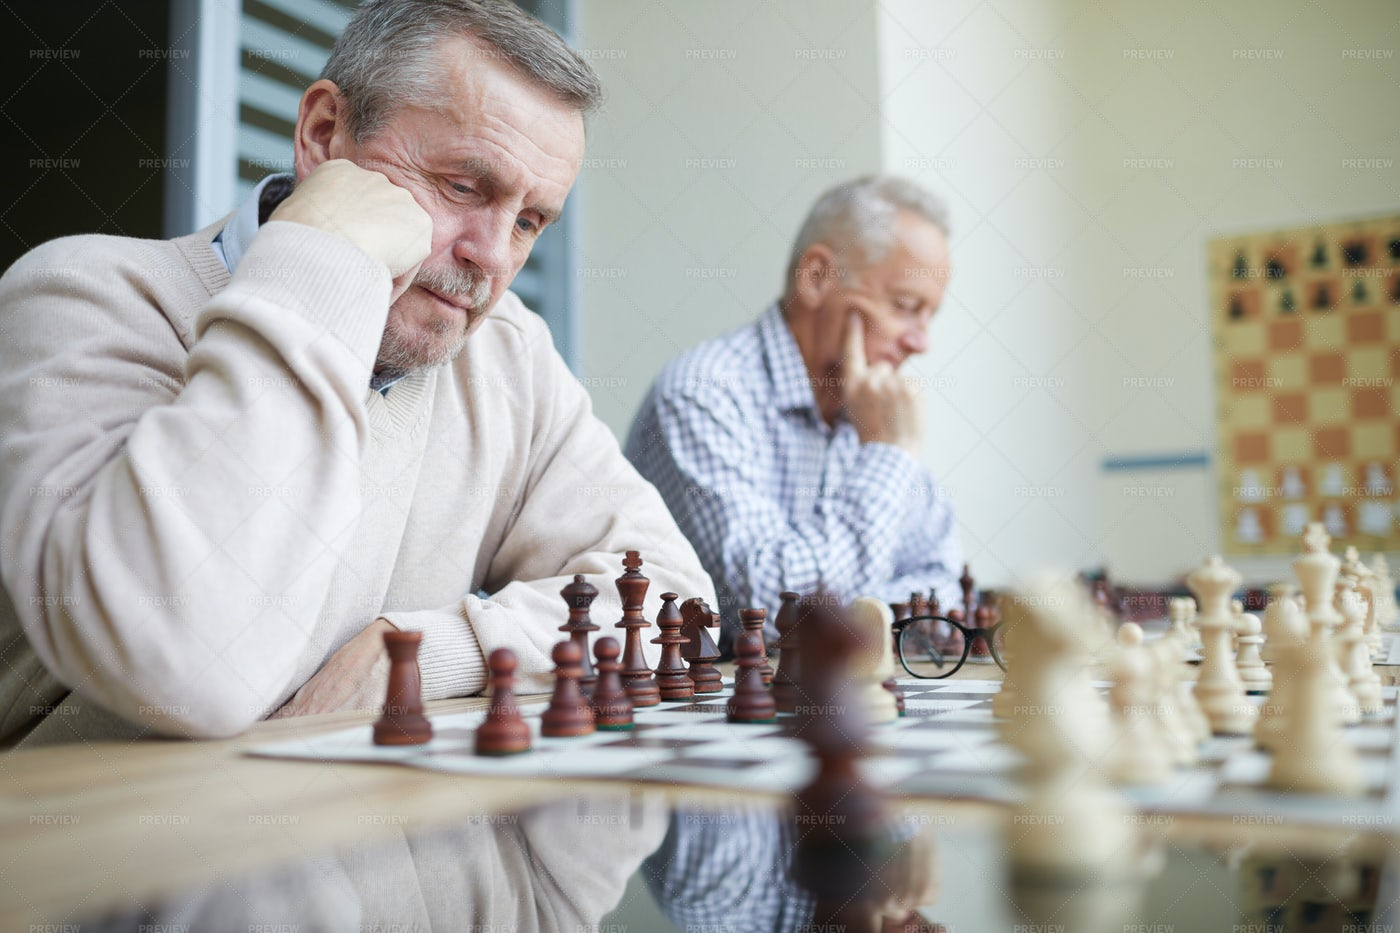 Solving Chess Problems: Stock Photos